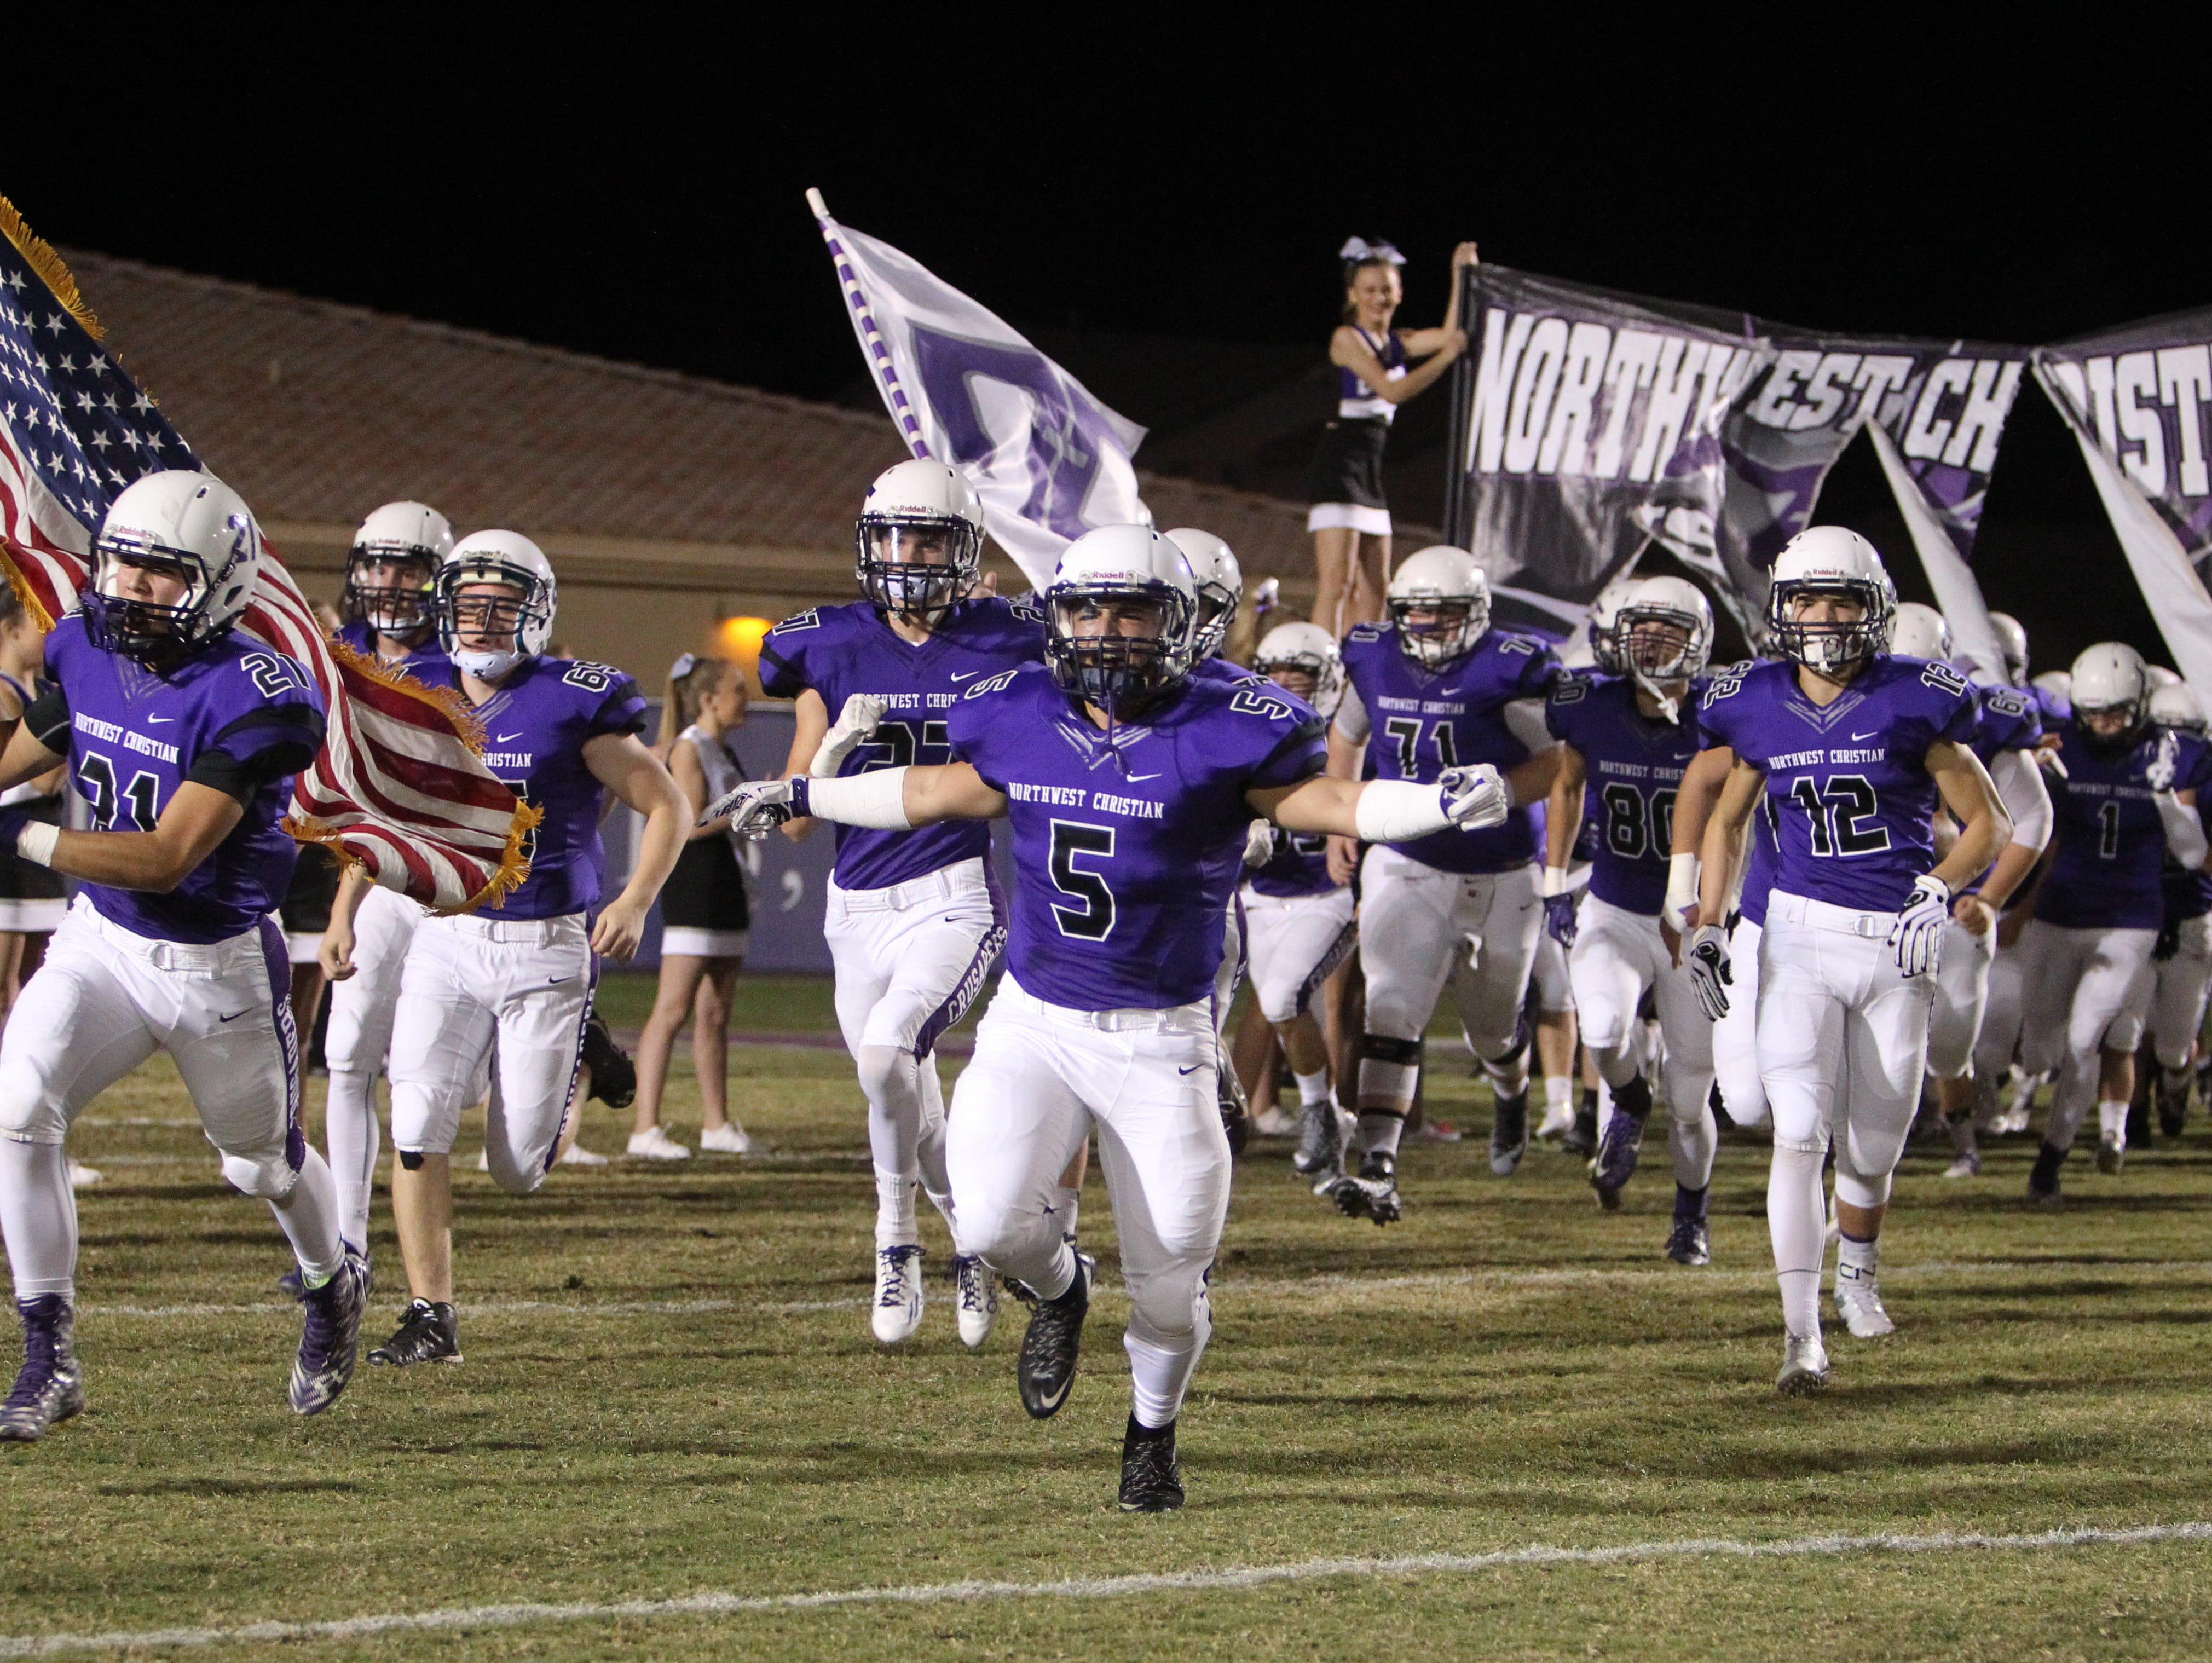 The Crusaders take the field before playing a football game at Northwest Christian School in Phoenix, Arizona on October 30, 2015.